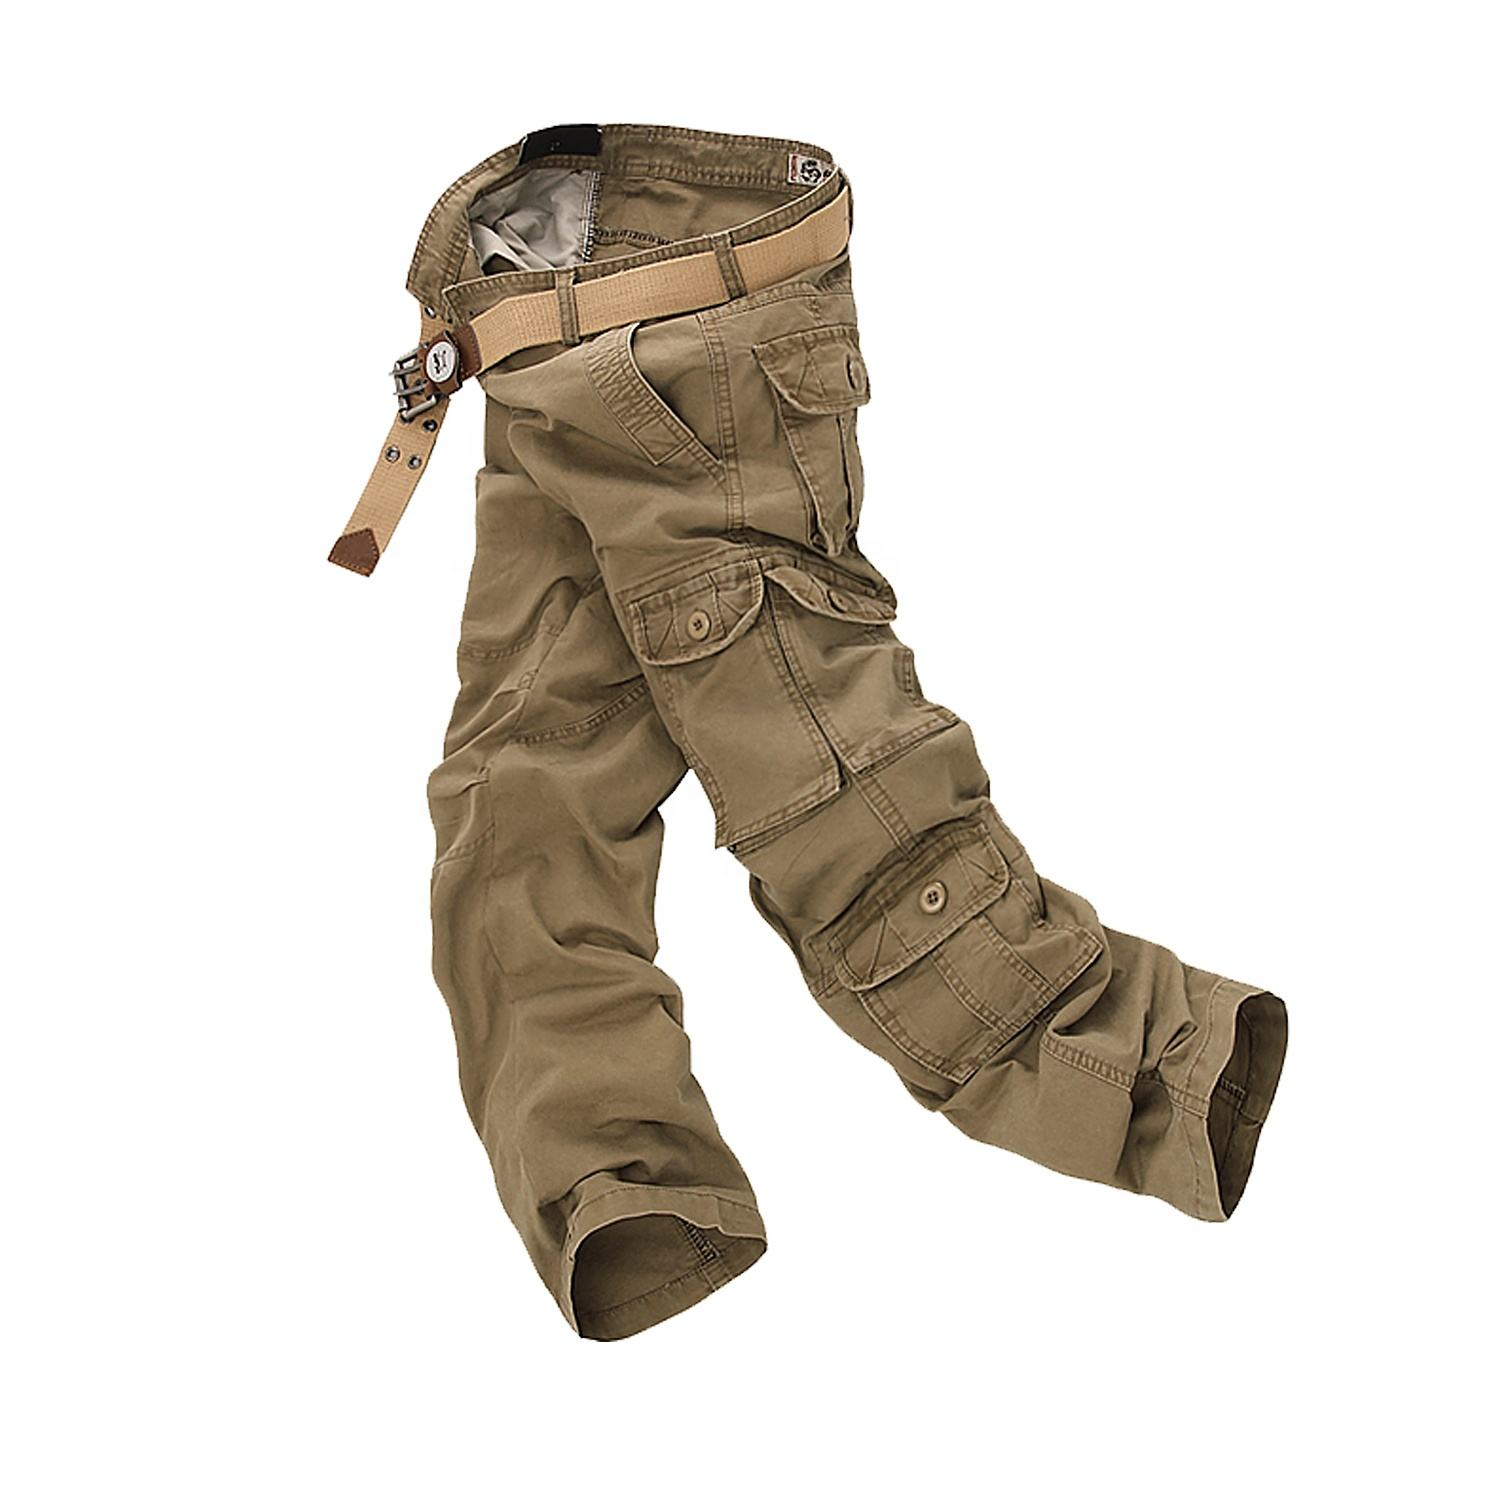 Casual work chino khaki Pants wholesale Cargo athletic mens cargo camouflage trousers with side pockets